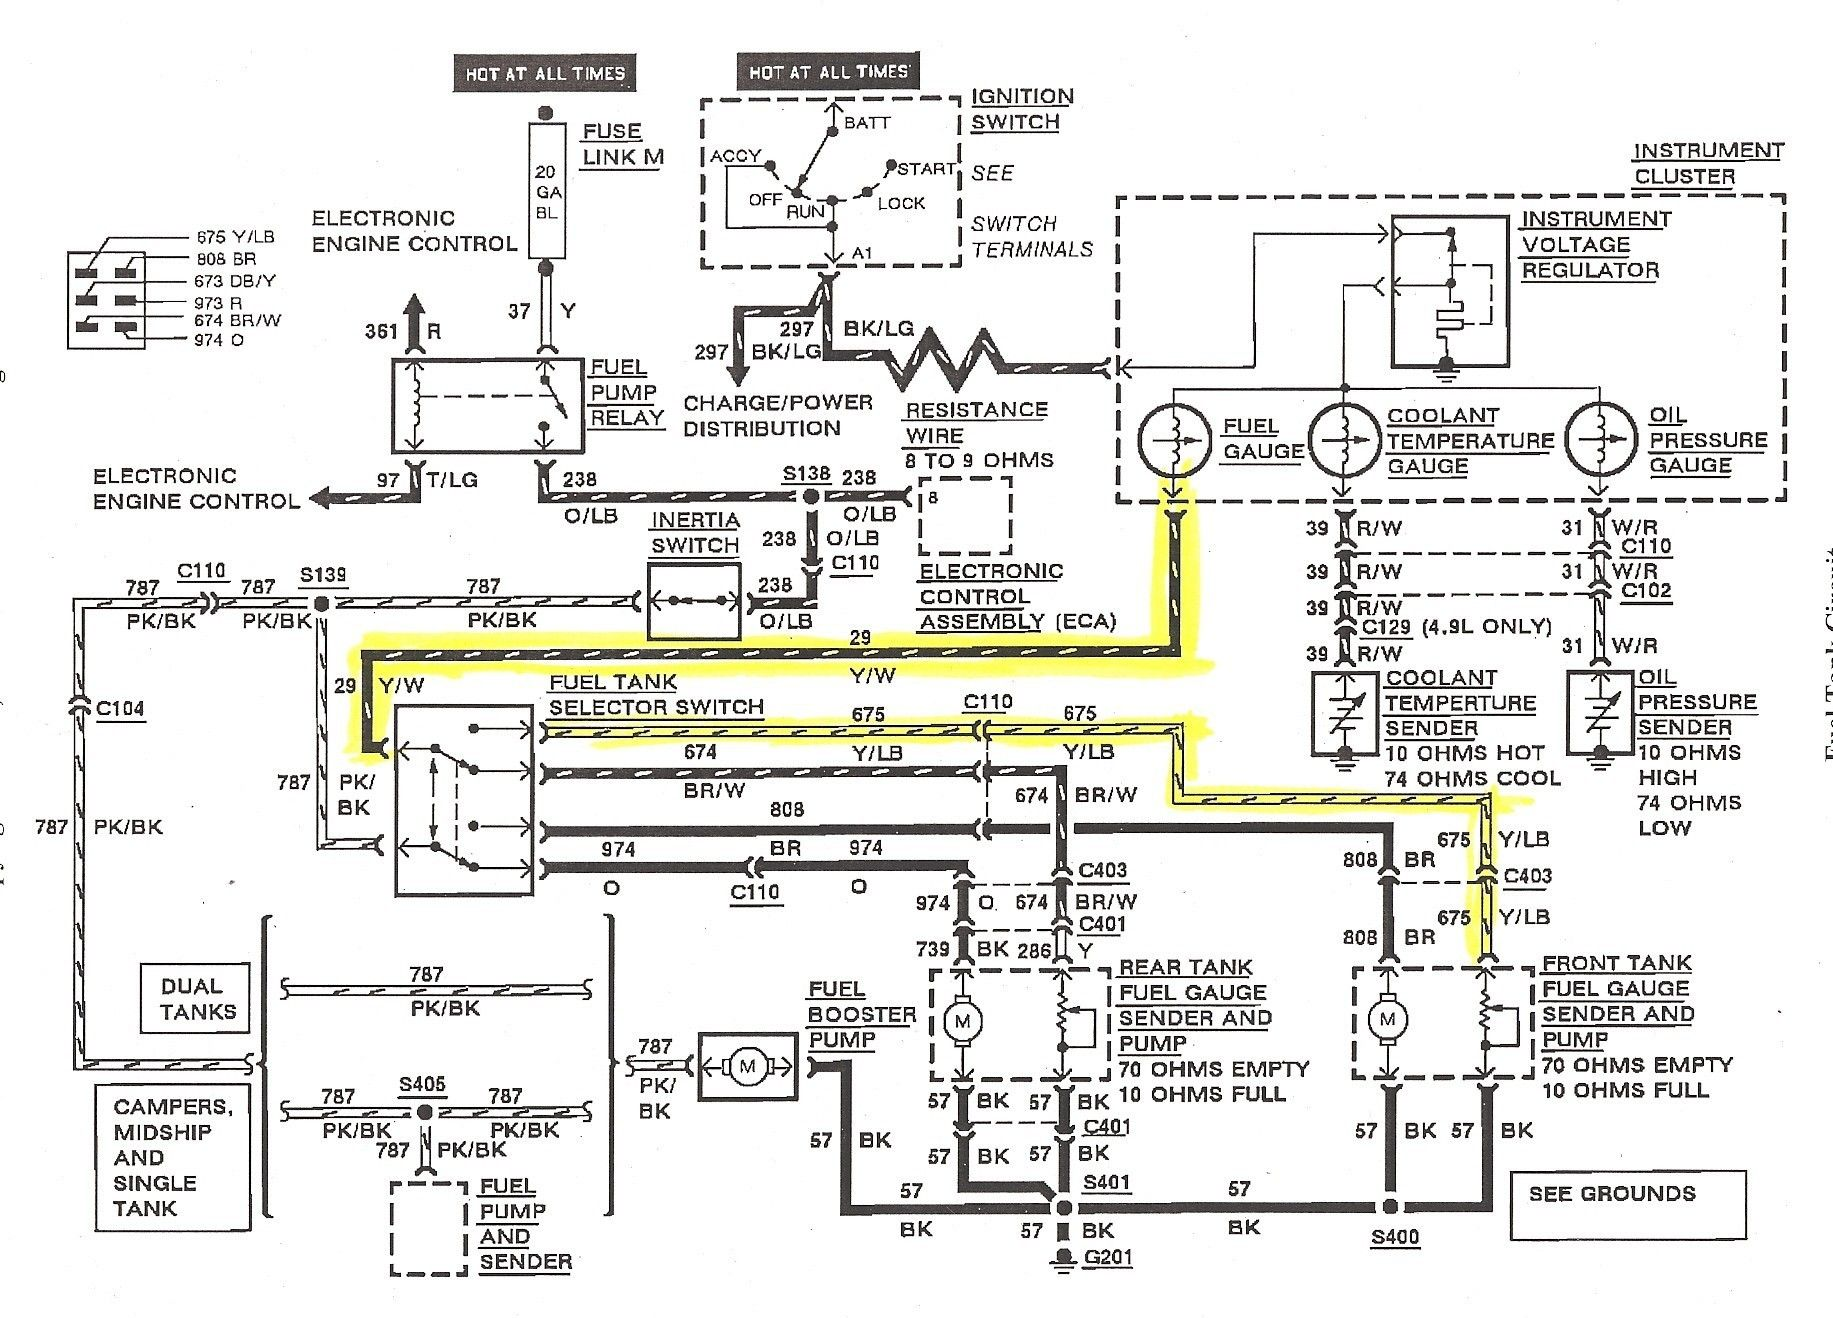 [DIAGRAM] 2001 Ram 1500 Wiring Diagram FULL Version HD